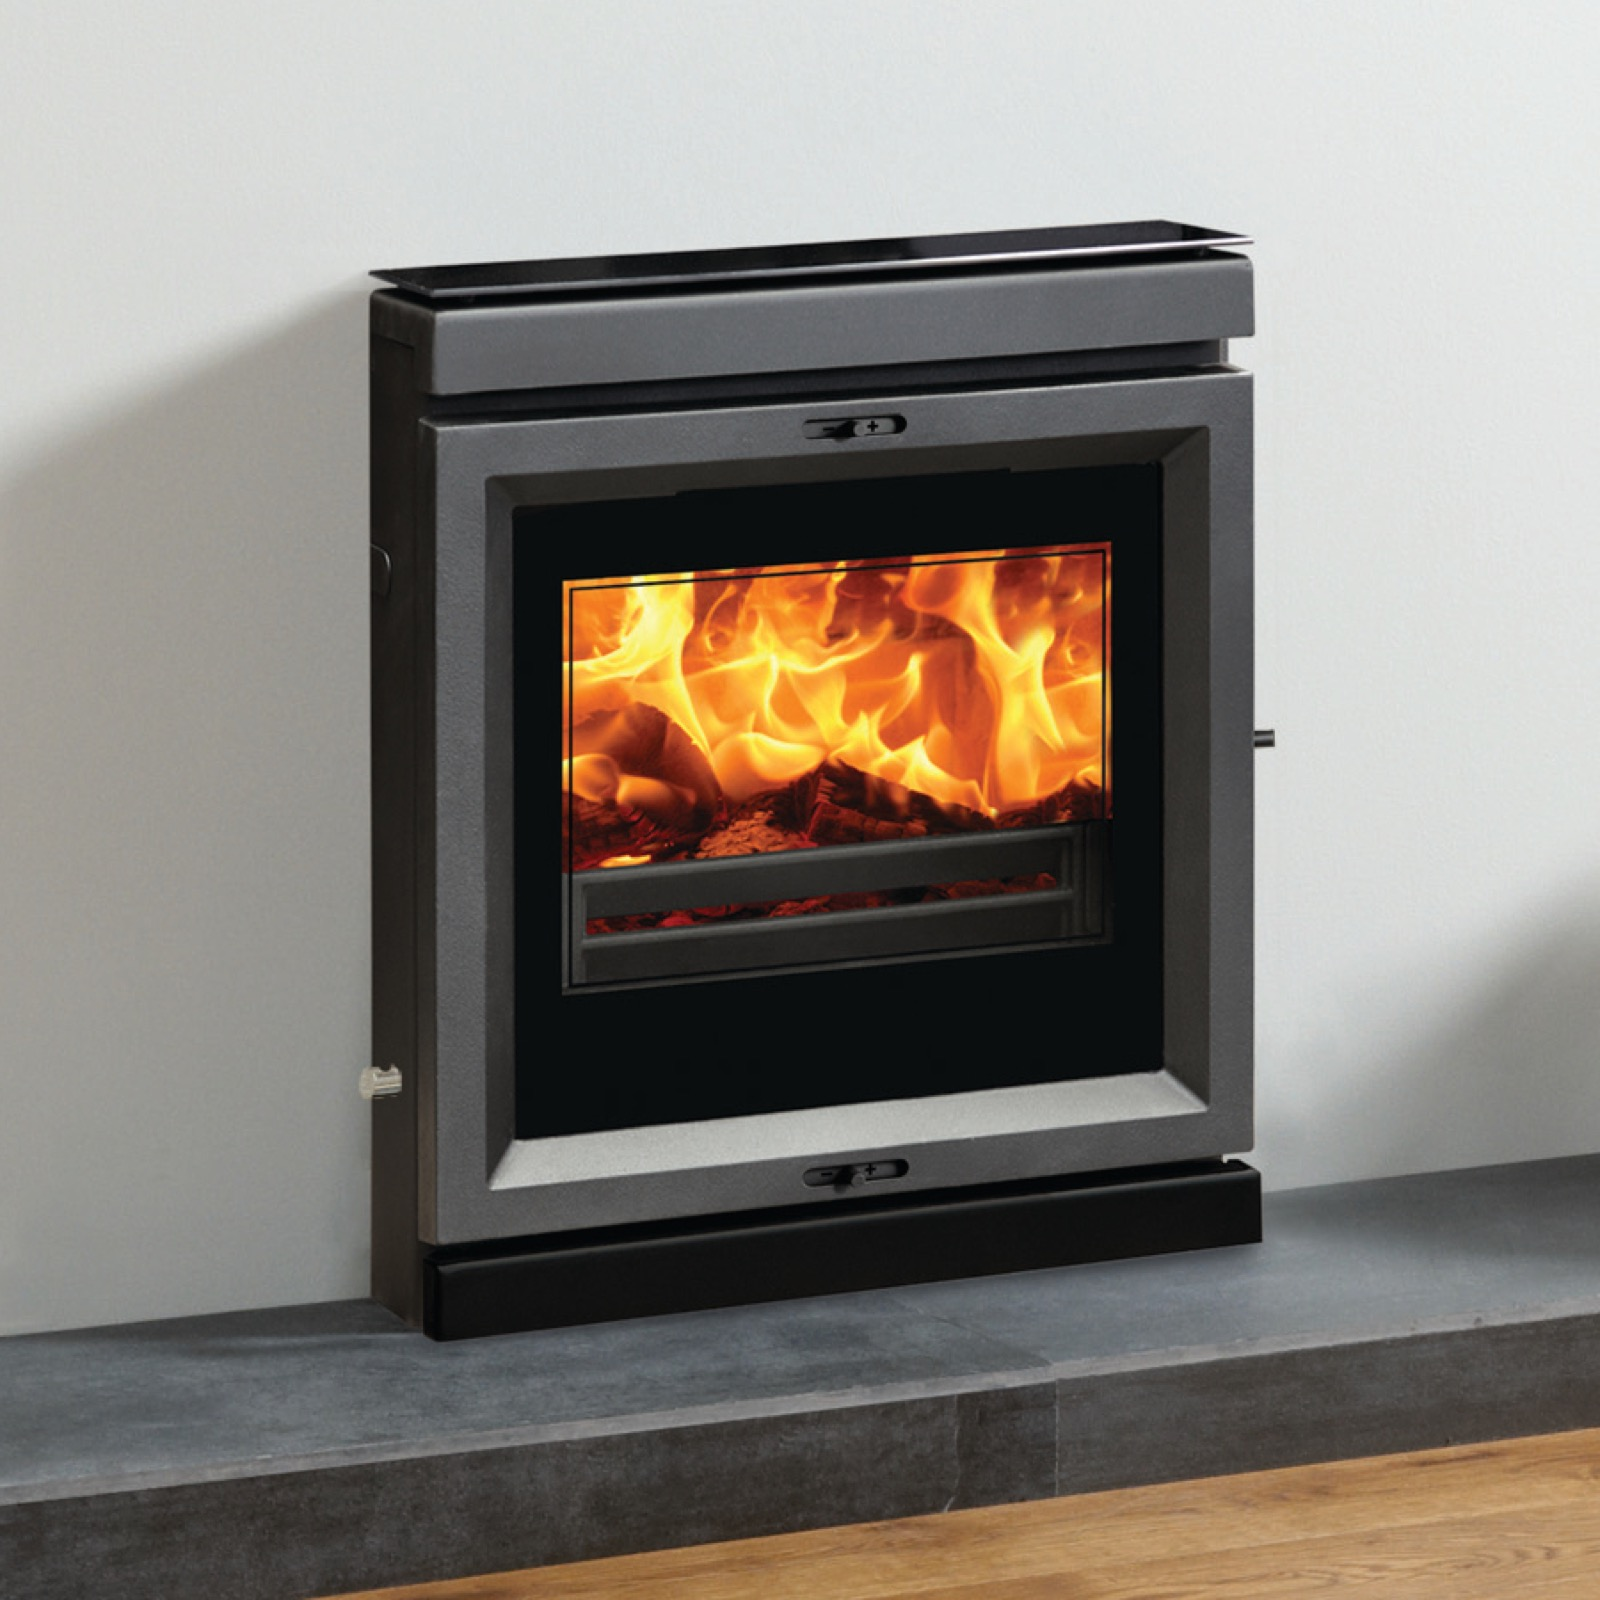 Stovax View 7 Multifuel Inset Convector Stove Simply Stoves